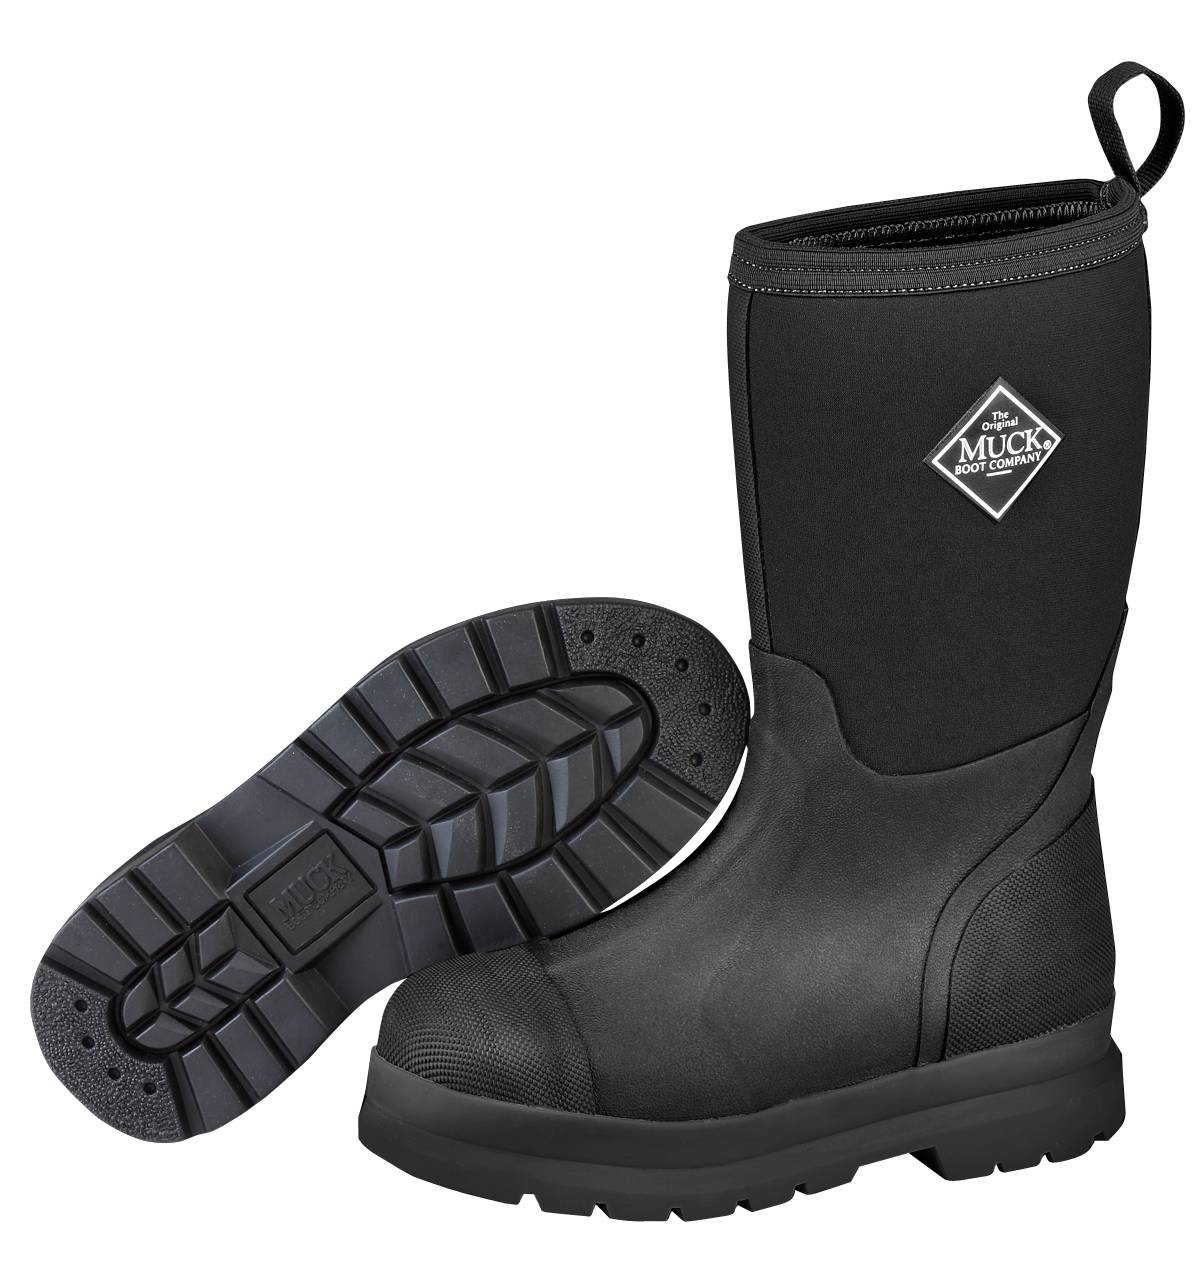 Muck Boots Chore Boots - Youth - Black